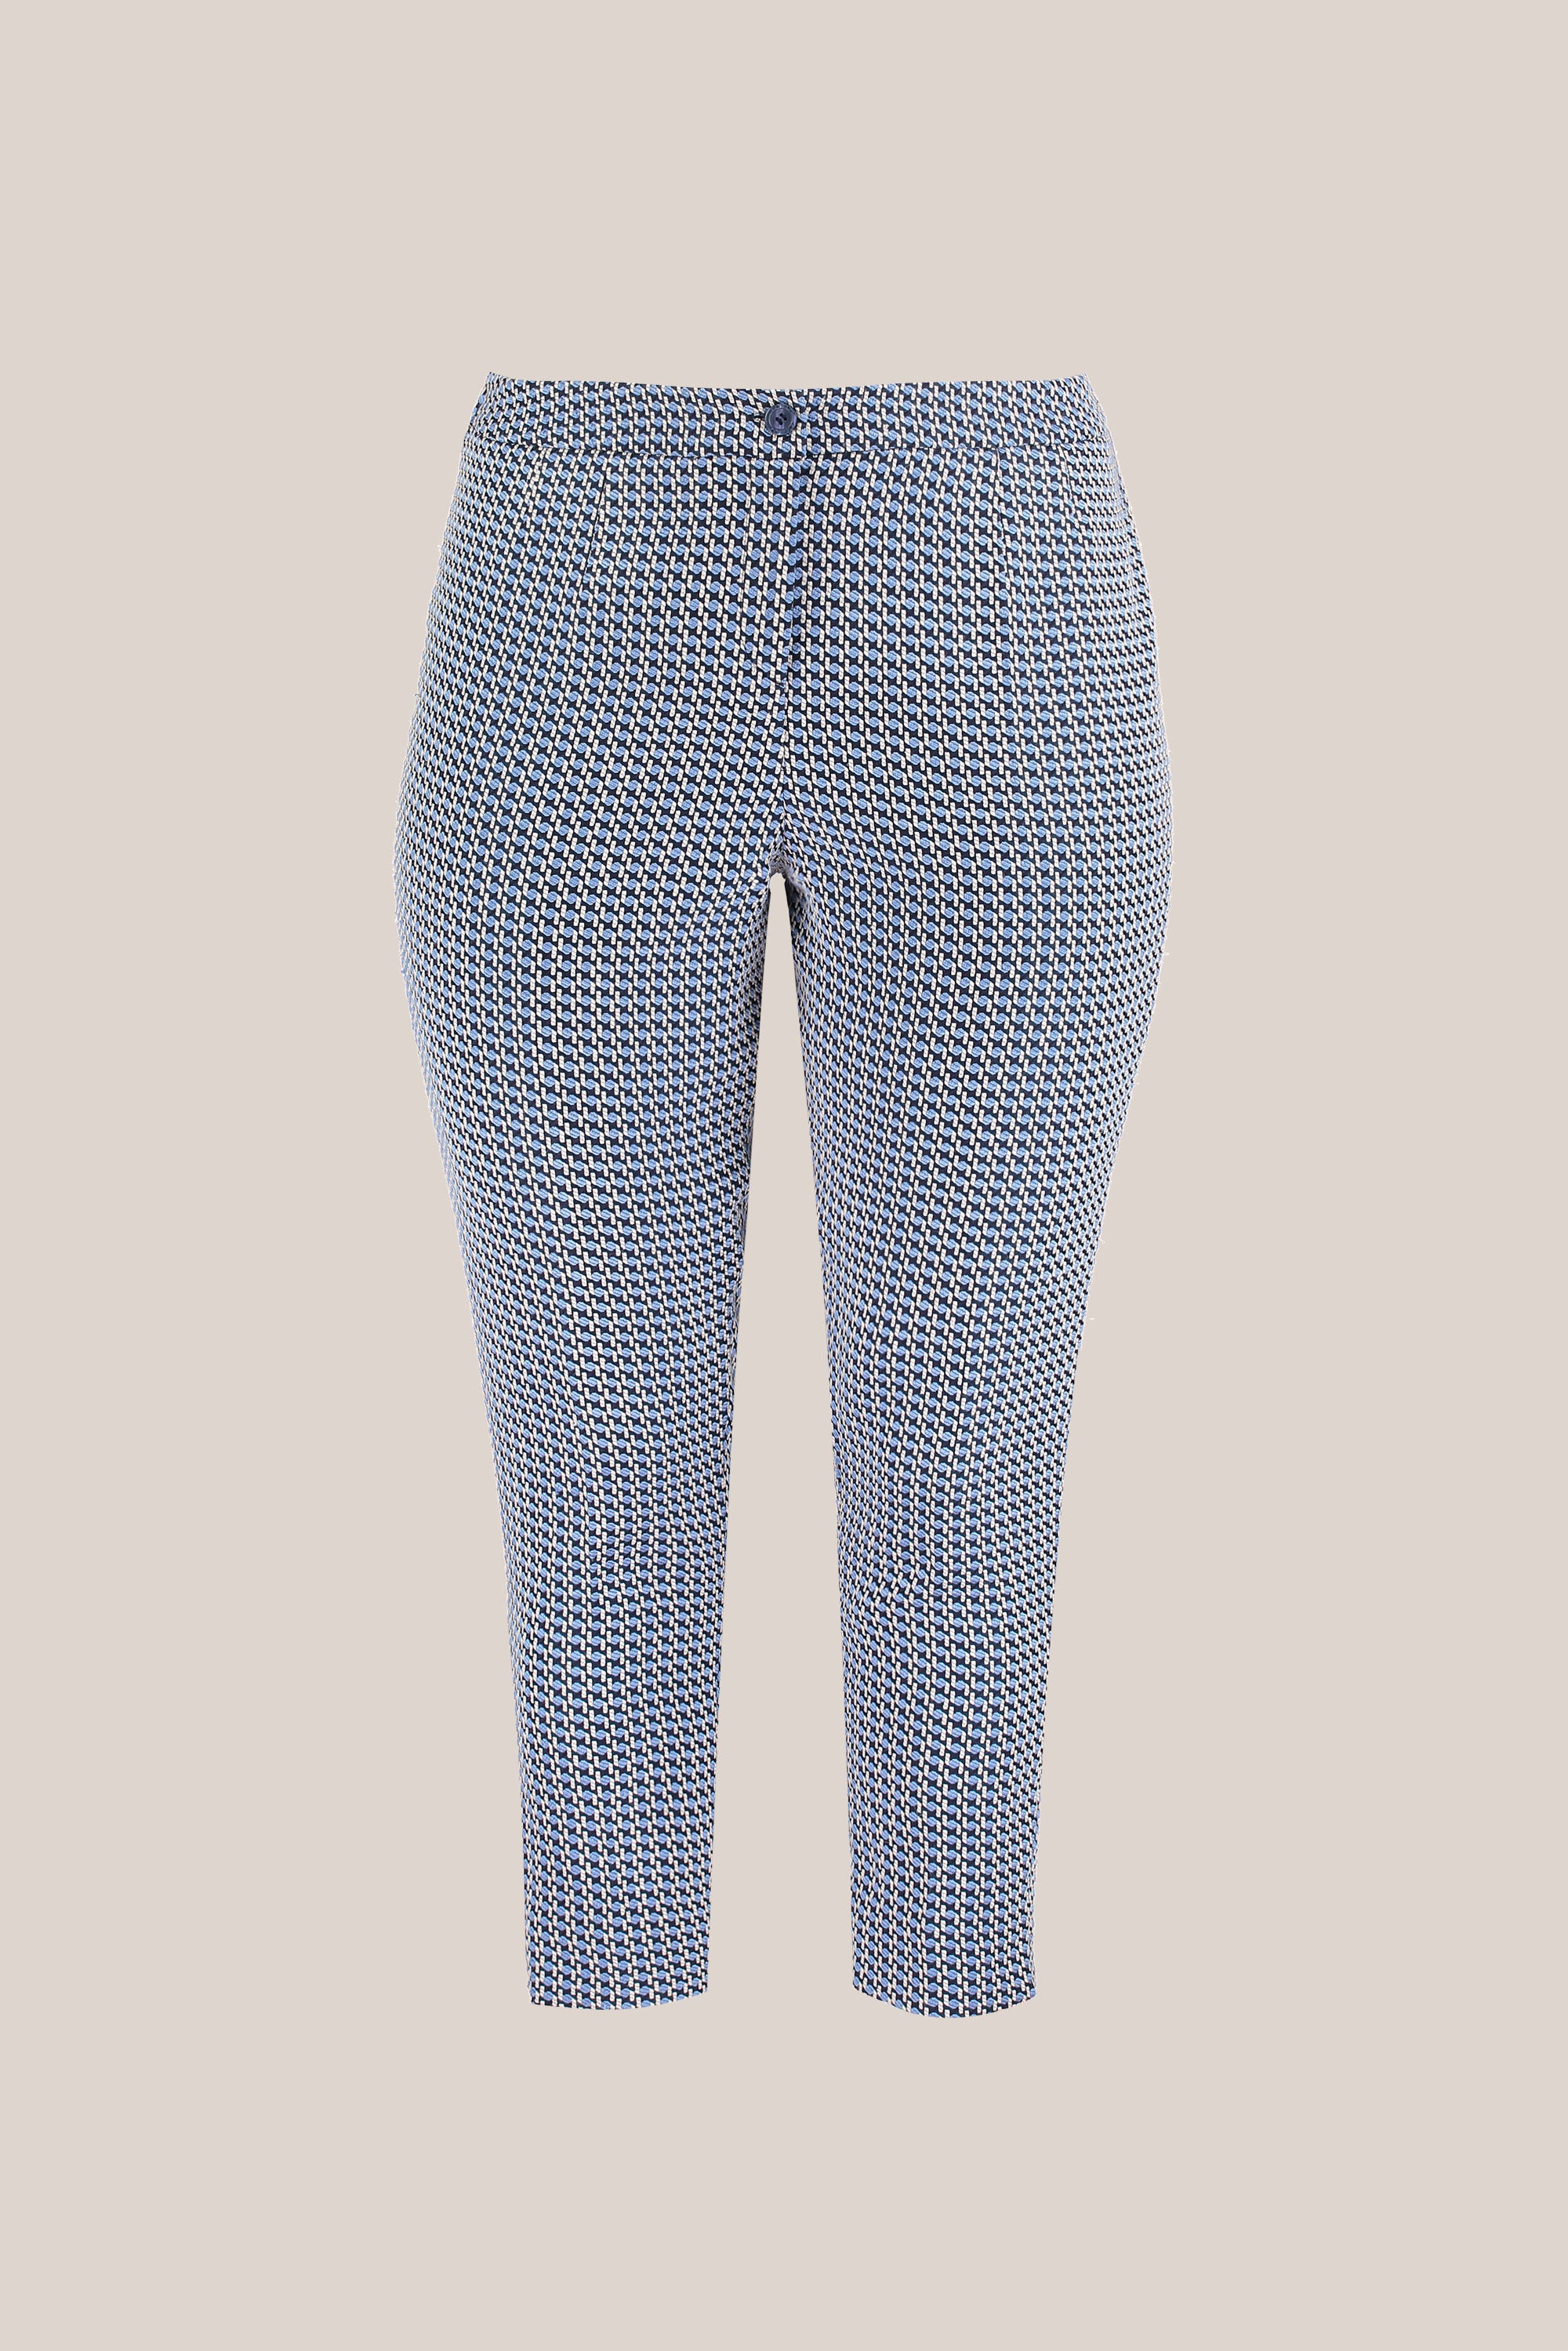 4d2978ce7ed Jacquard Tailored Trousers Designer Plus Size trousers and pants ...